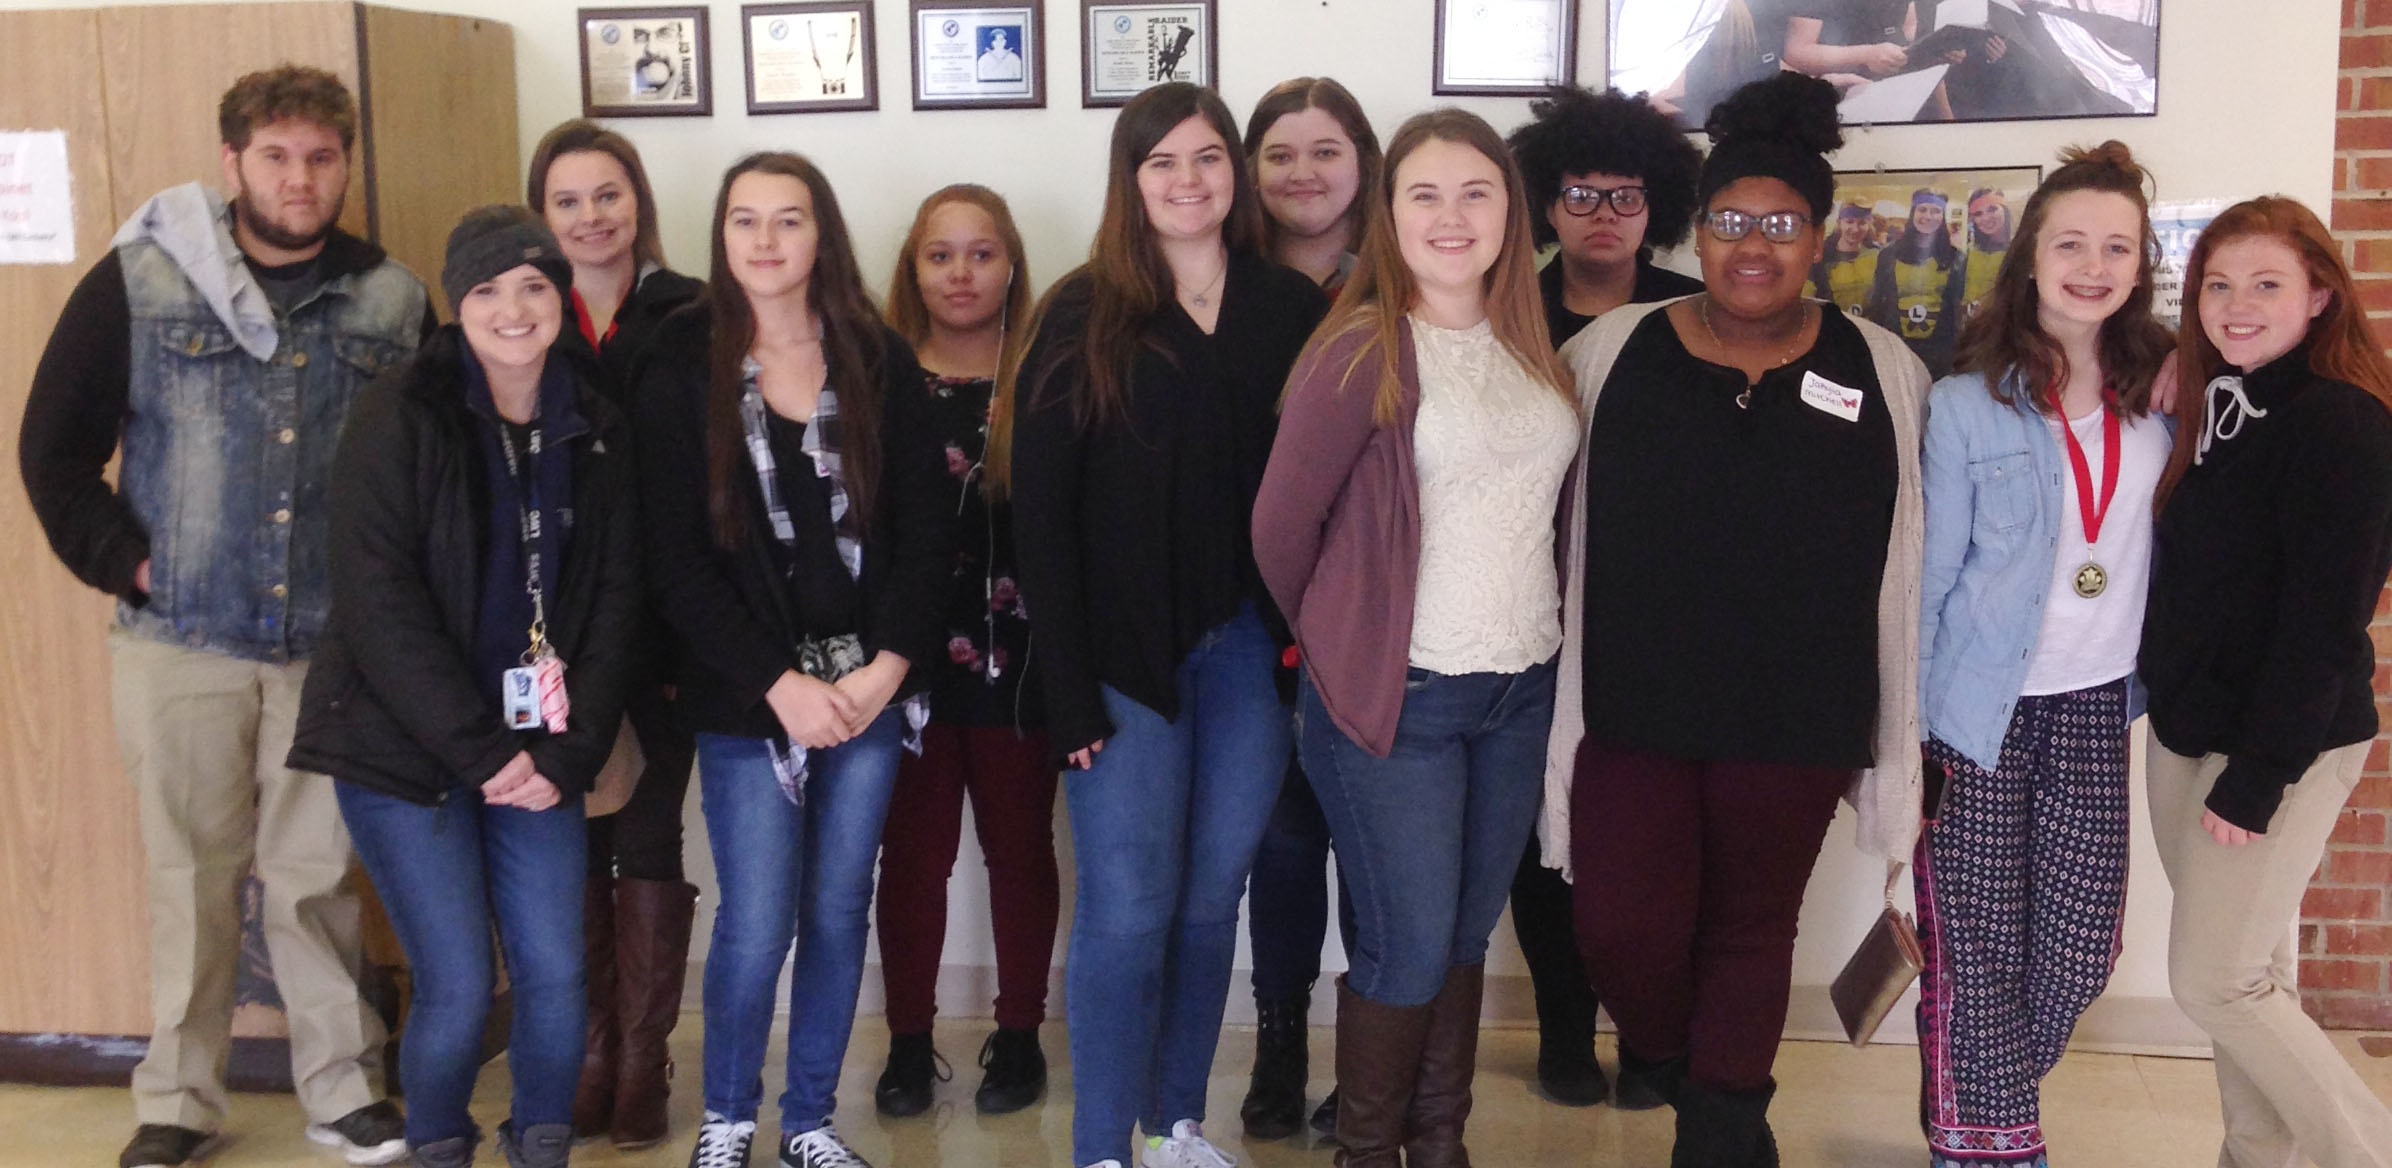 CHS FCCLA students attended the Region 14 meeting on Tuesday, March 14, at Lindsey Wilson College. Afterward, the students toured LWC. From left are CHS senior Dalton Ballentine, their LWC tour guide, senior Kyrsten Hill, juniors Makala Antle, Shailyn Fields, Vivian Brown, Lauren Riddle and Haley Fitch, sophomore Jay Tucker, freshman Jakyia Mitchell and sophomores Caleigh Bright and Bethany Harris.